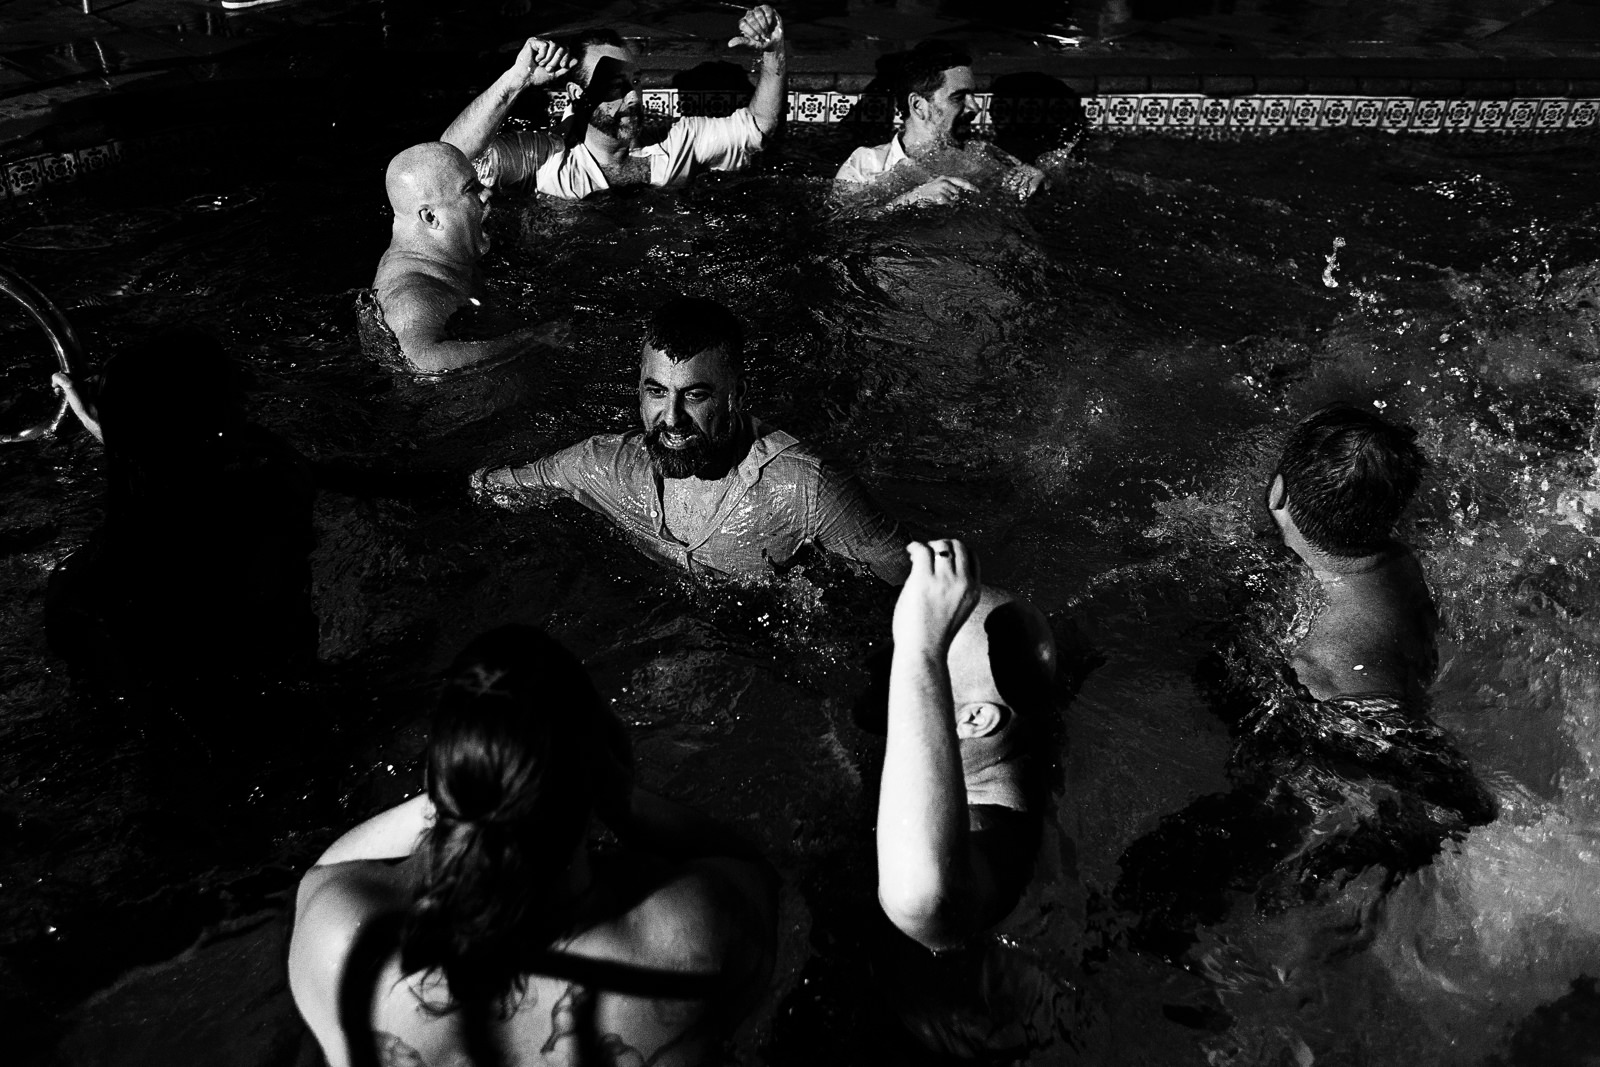 Groom and wedding guests continuing the party in the pool